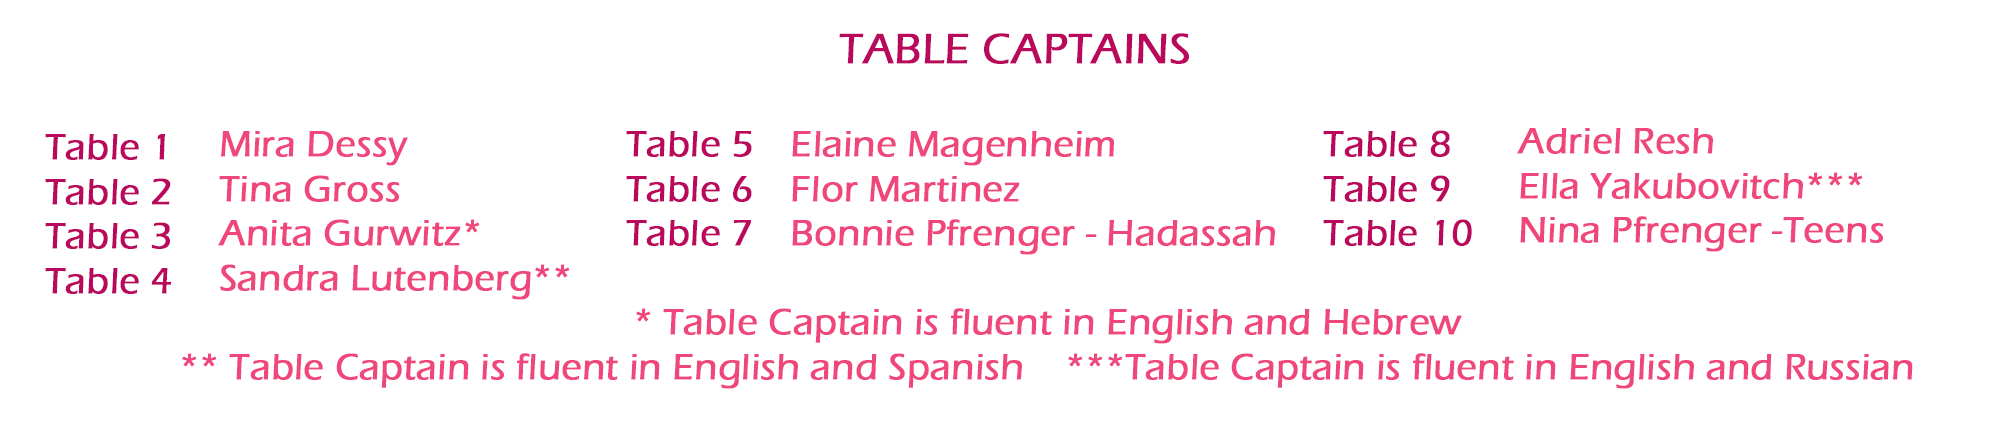 table captains.jpg